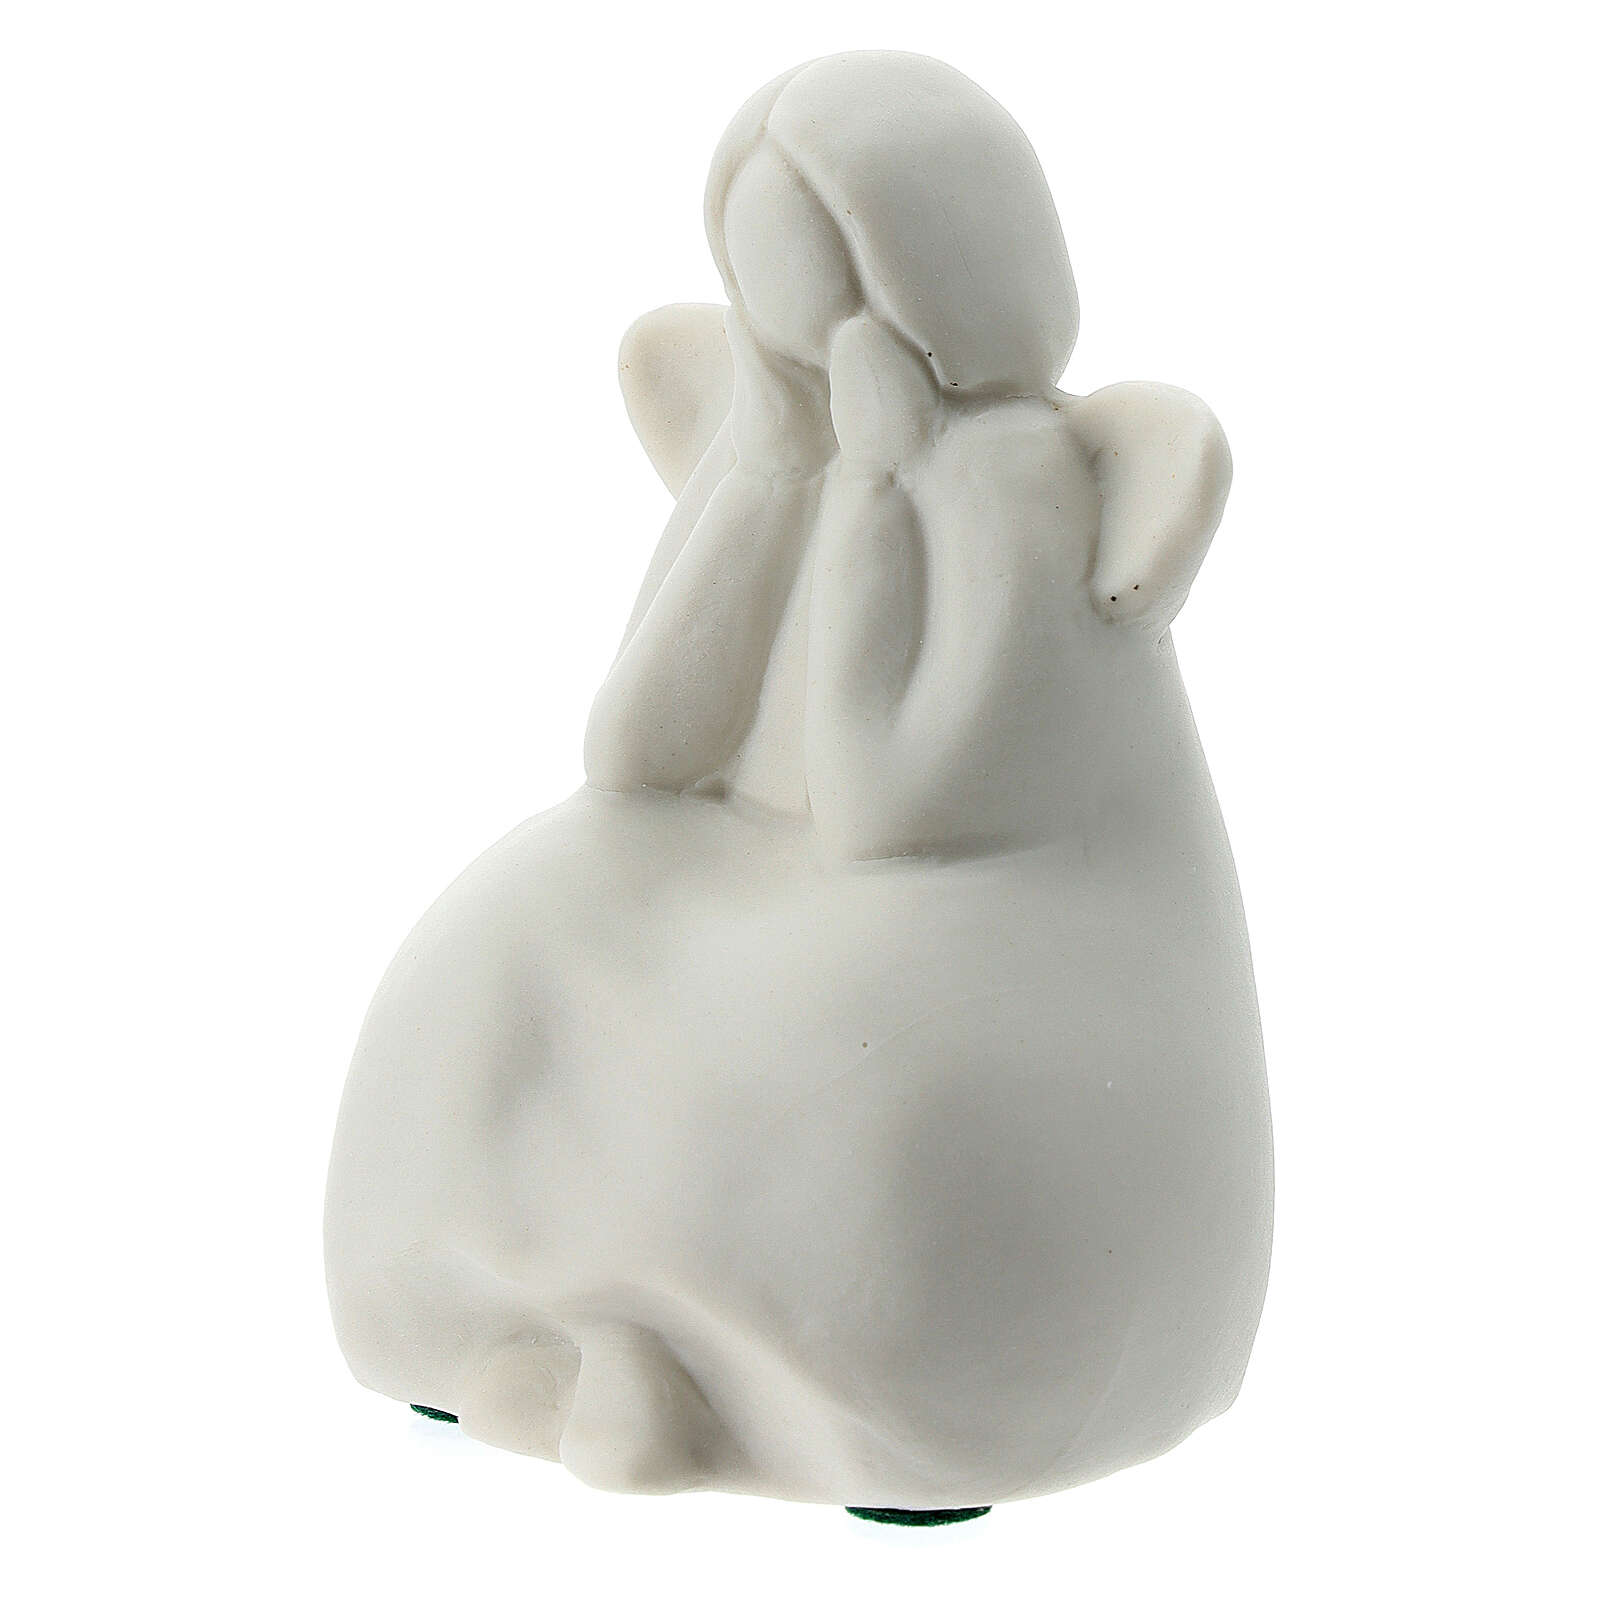 Seated angel 2 1/4 in white porcelain 3